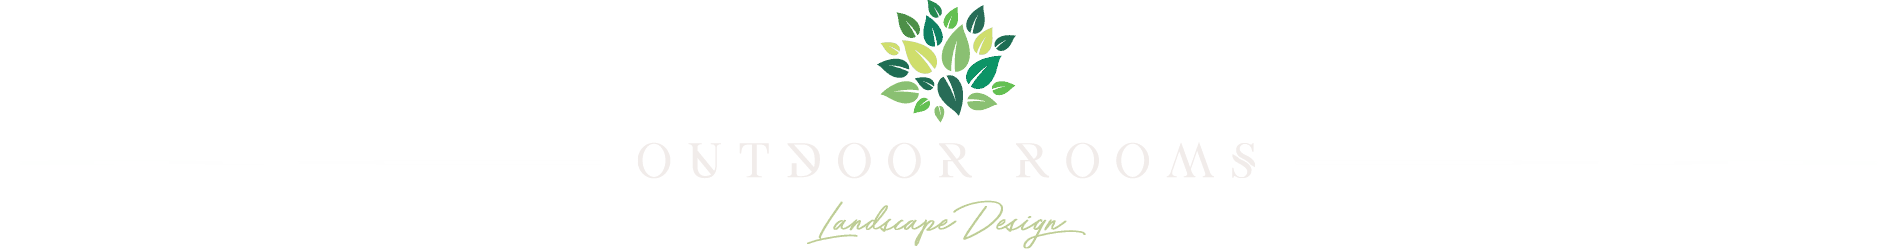 Outdoor Rooms Landscape Design